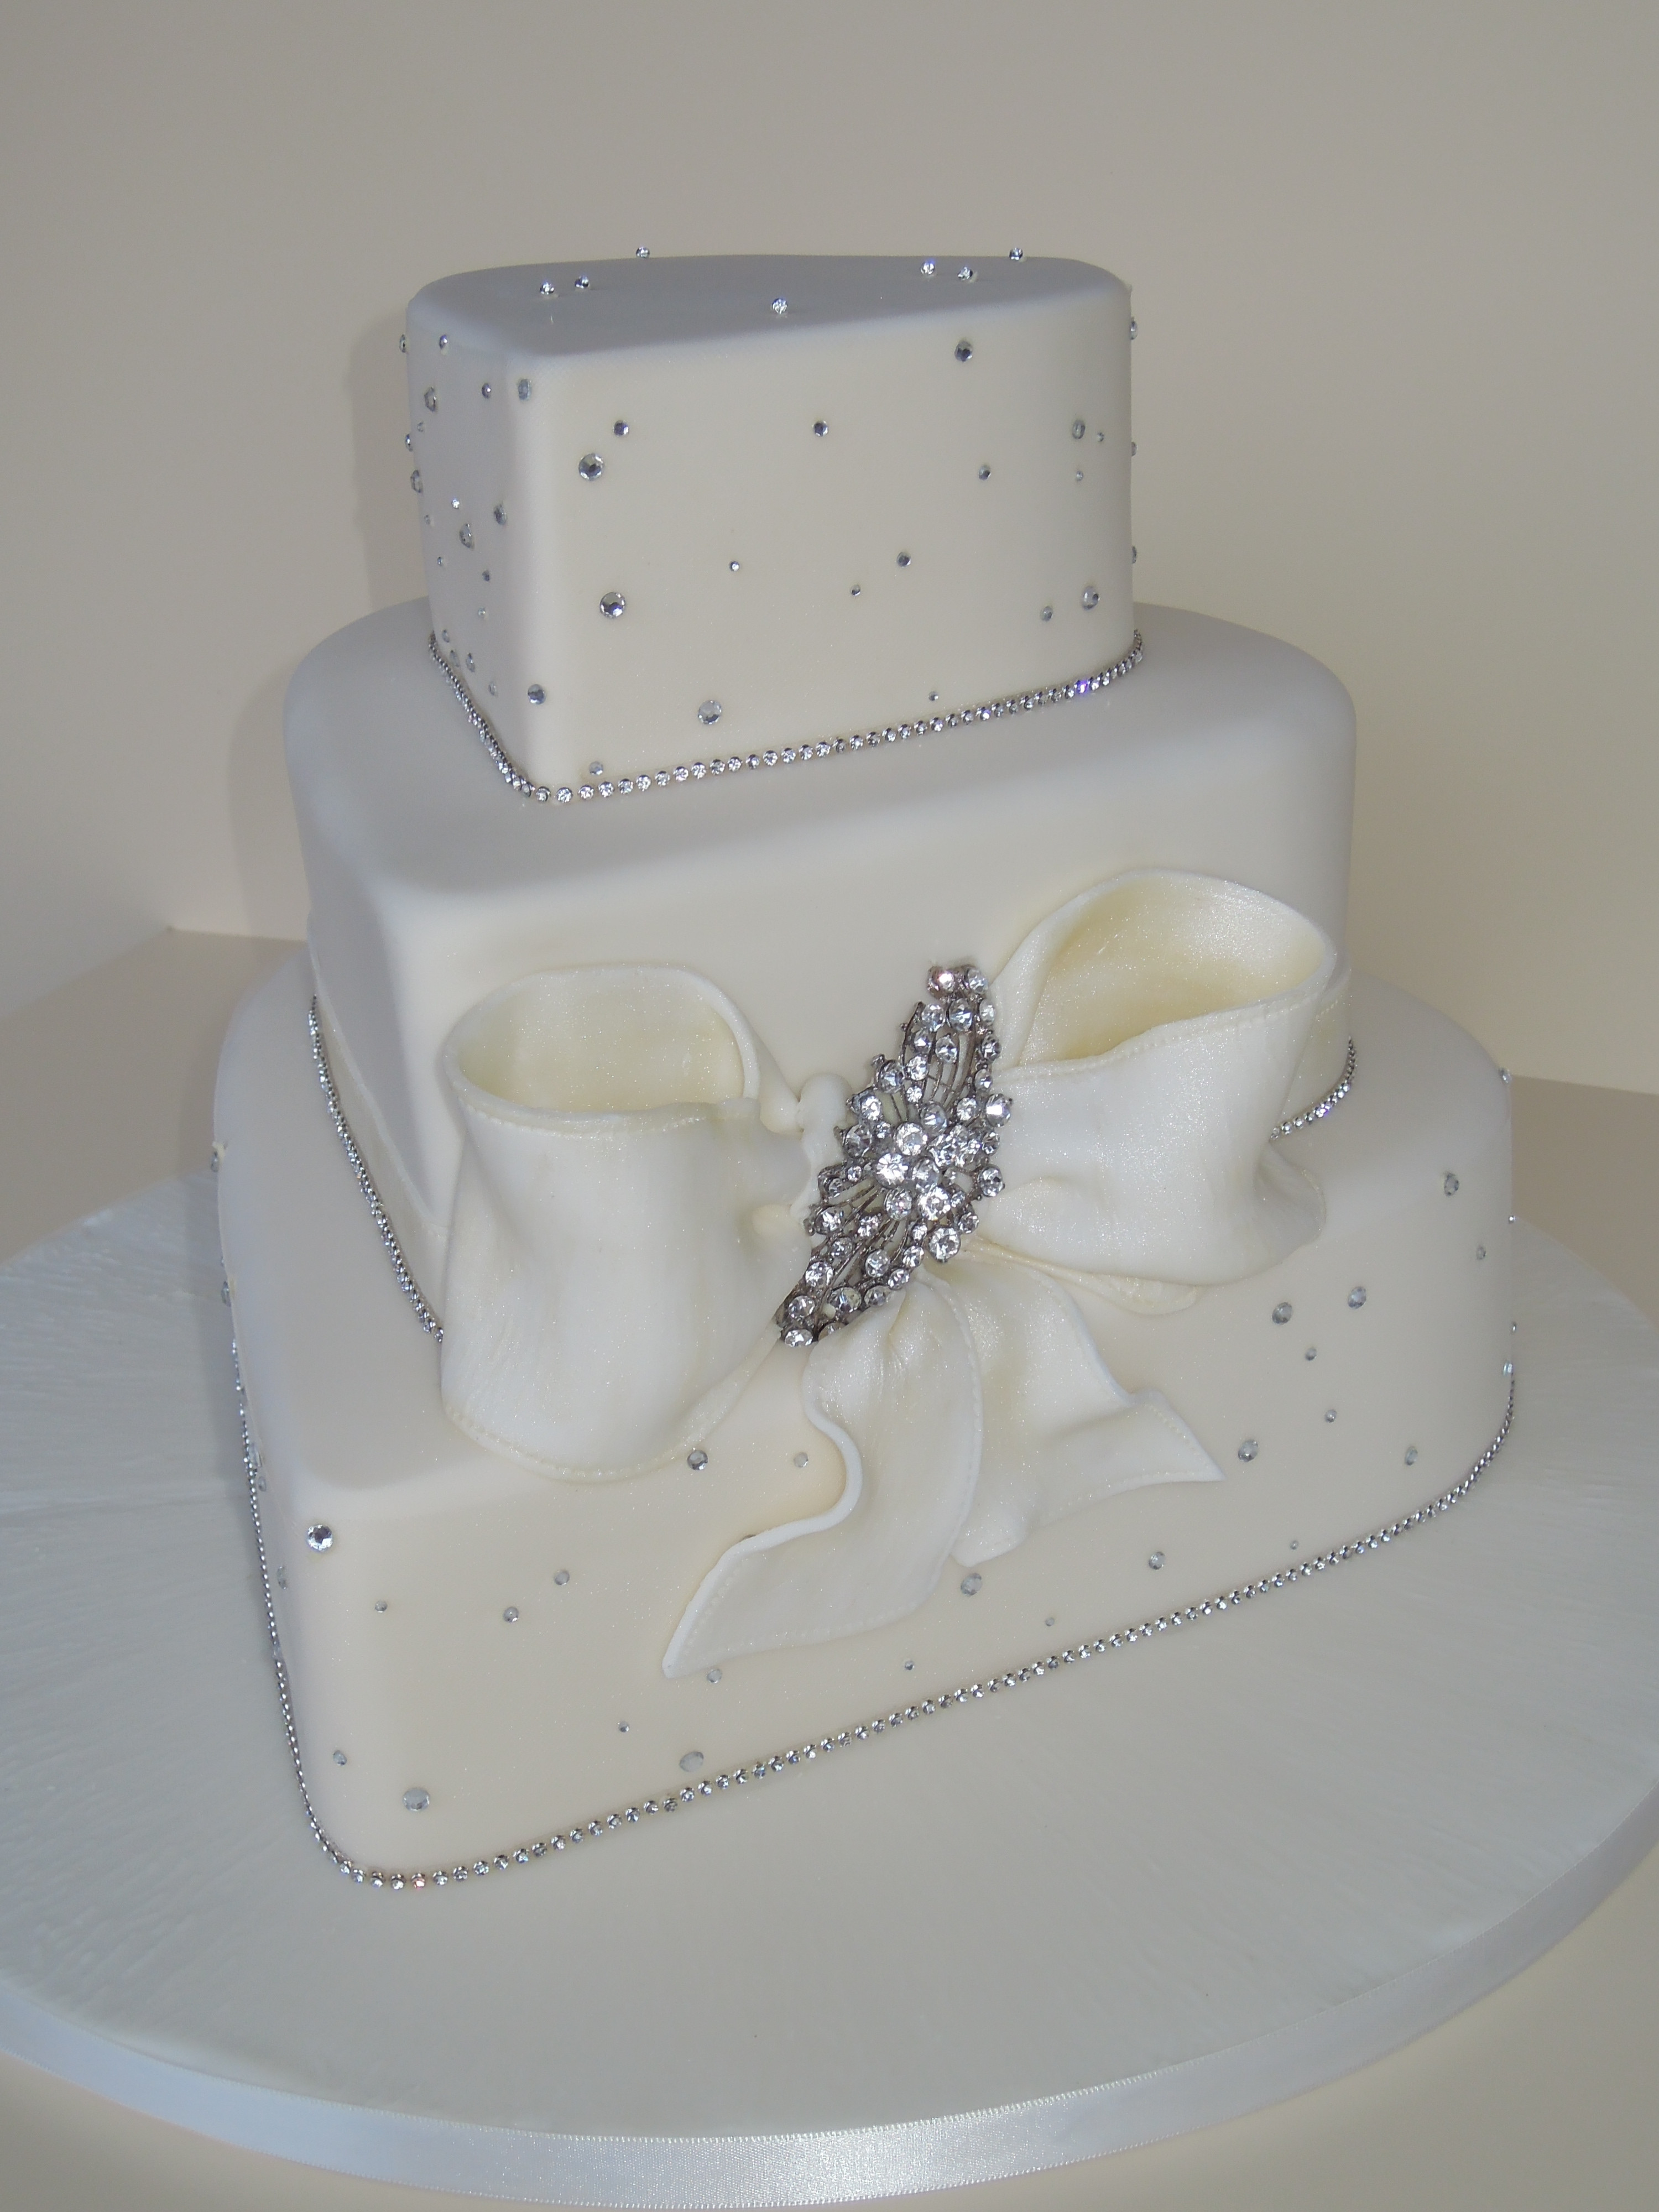 Hearts Wedding Cakes  Heart wedding cakes an original way of spicing up idea